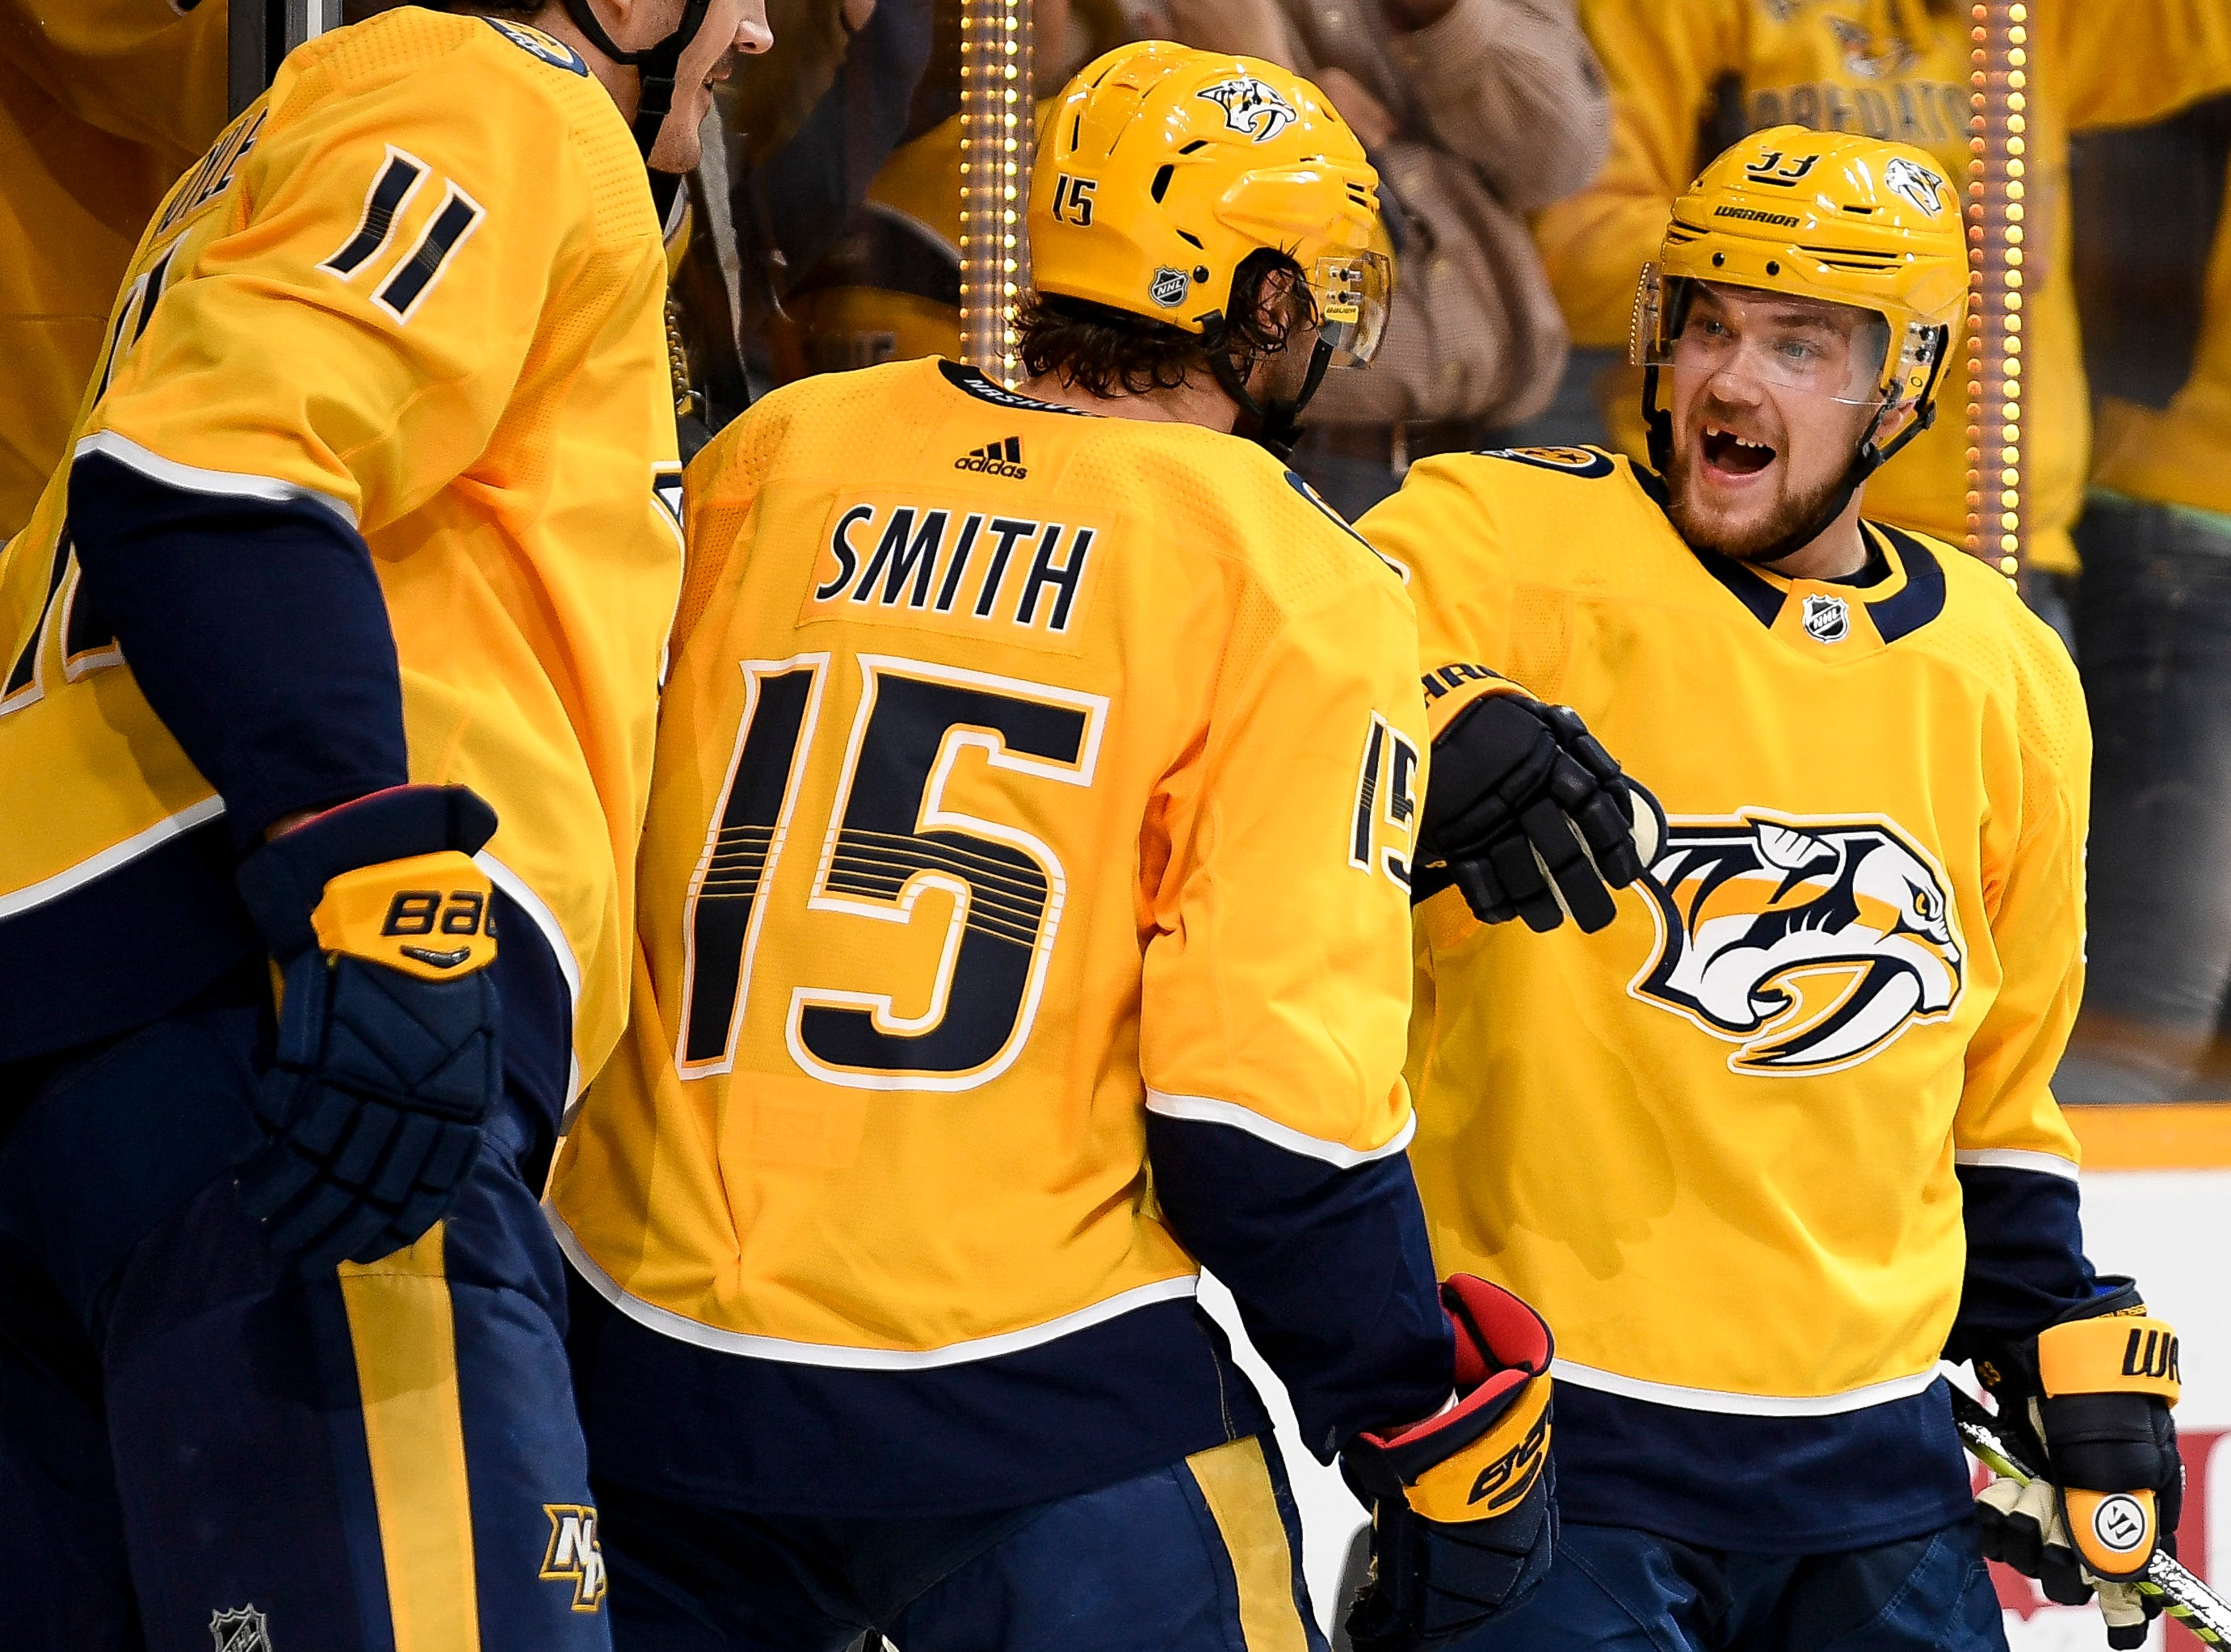 Nashville Predators right wing Viktor Arvidsson (33) reacts to scoring the game-winning goal against the Chicago Blackhawks during the third period at Bridgestone Arena in Nashville, Tenn., Saturday, April 6, 2019.